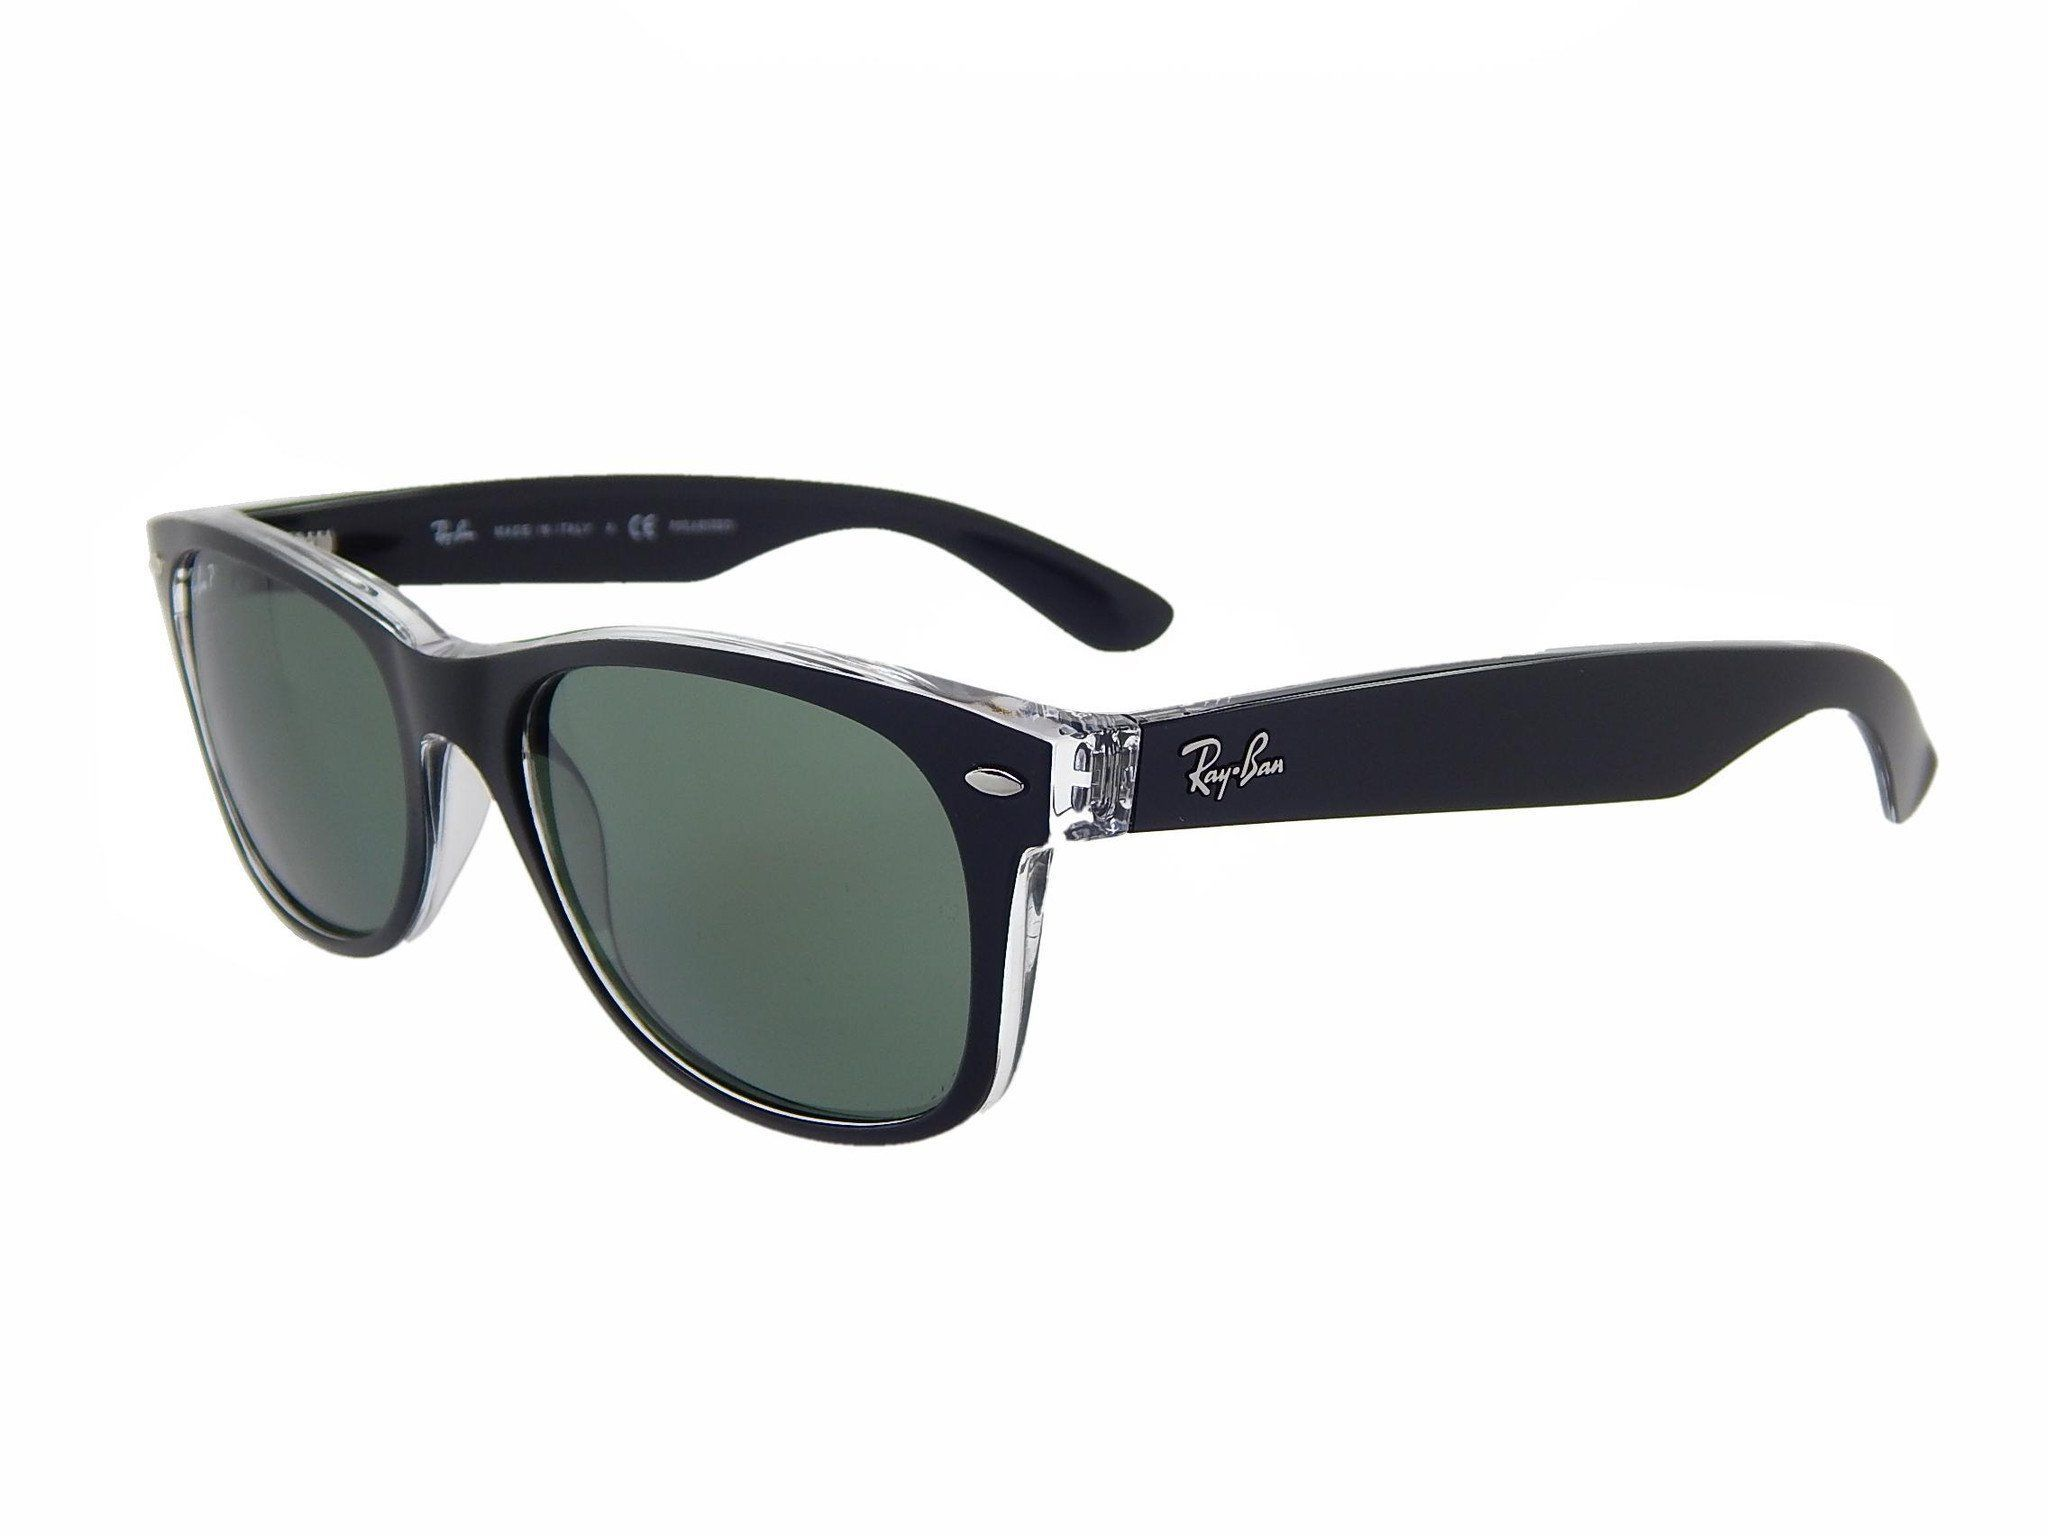 ac814f8744 Ray Ban RB2132 605258 Black Transparent Crystal Green Polarized 55mm  Sunglasses